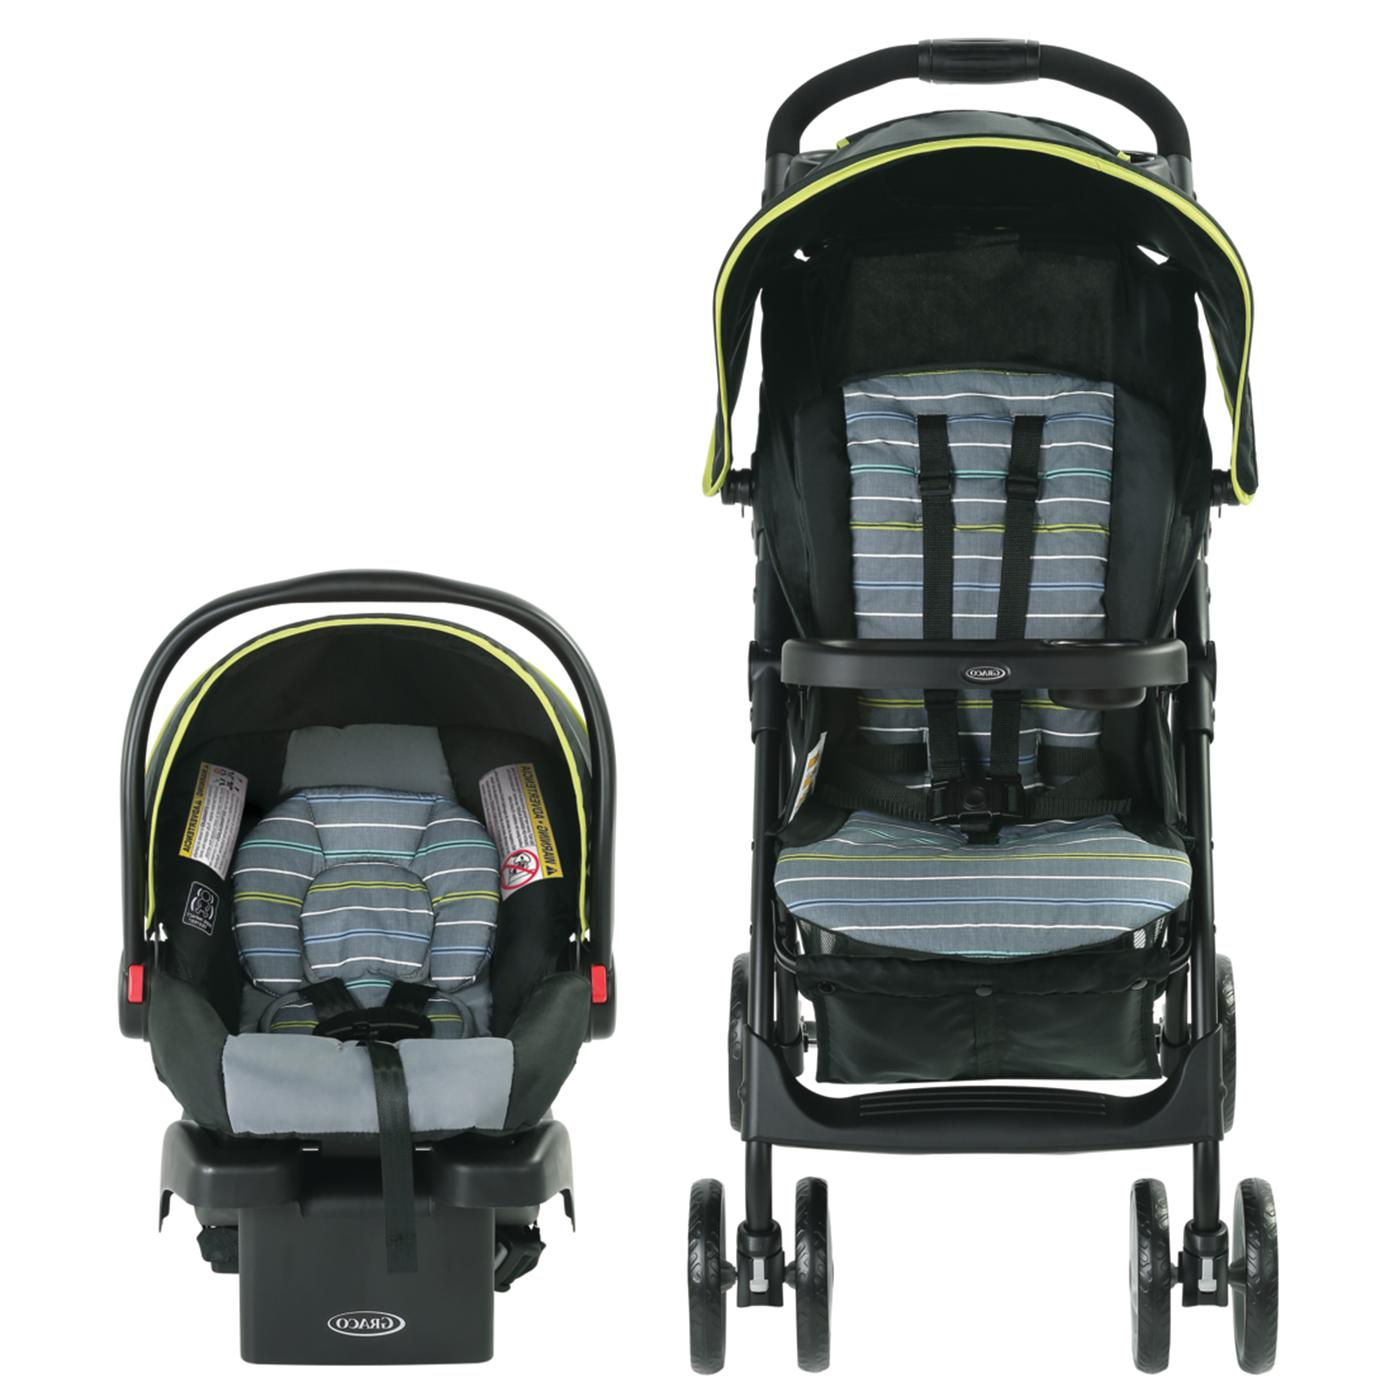 Graco LiteRider Travel System Seat And